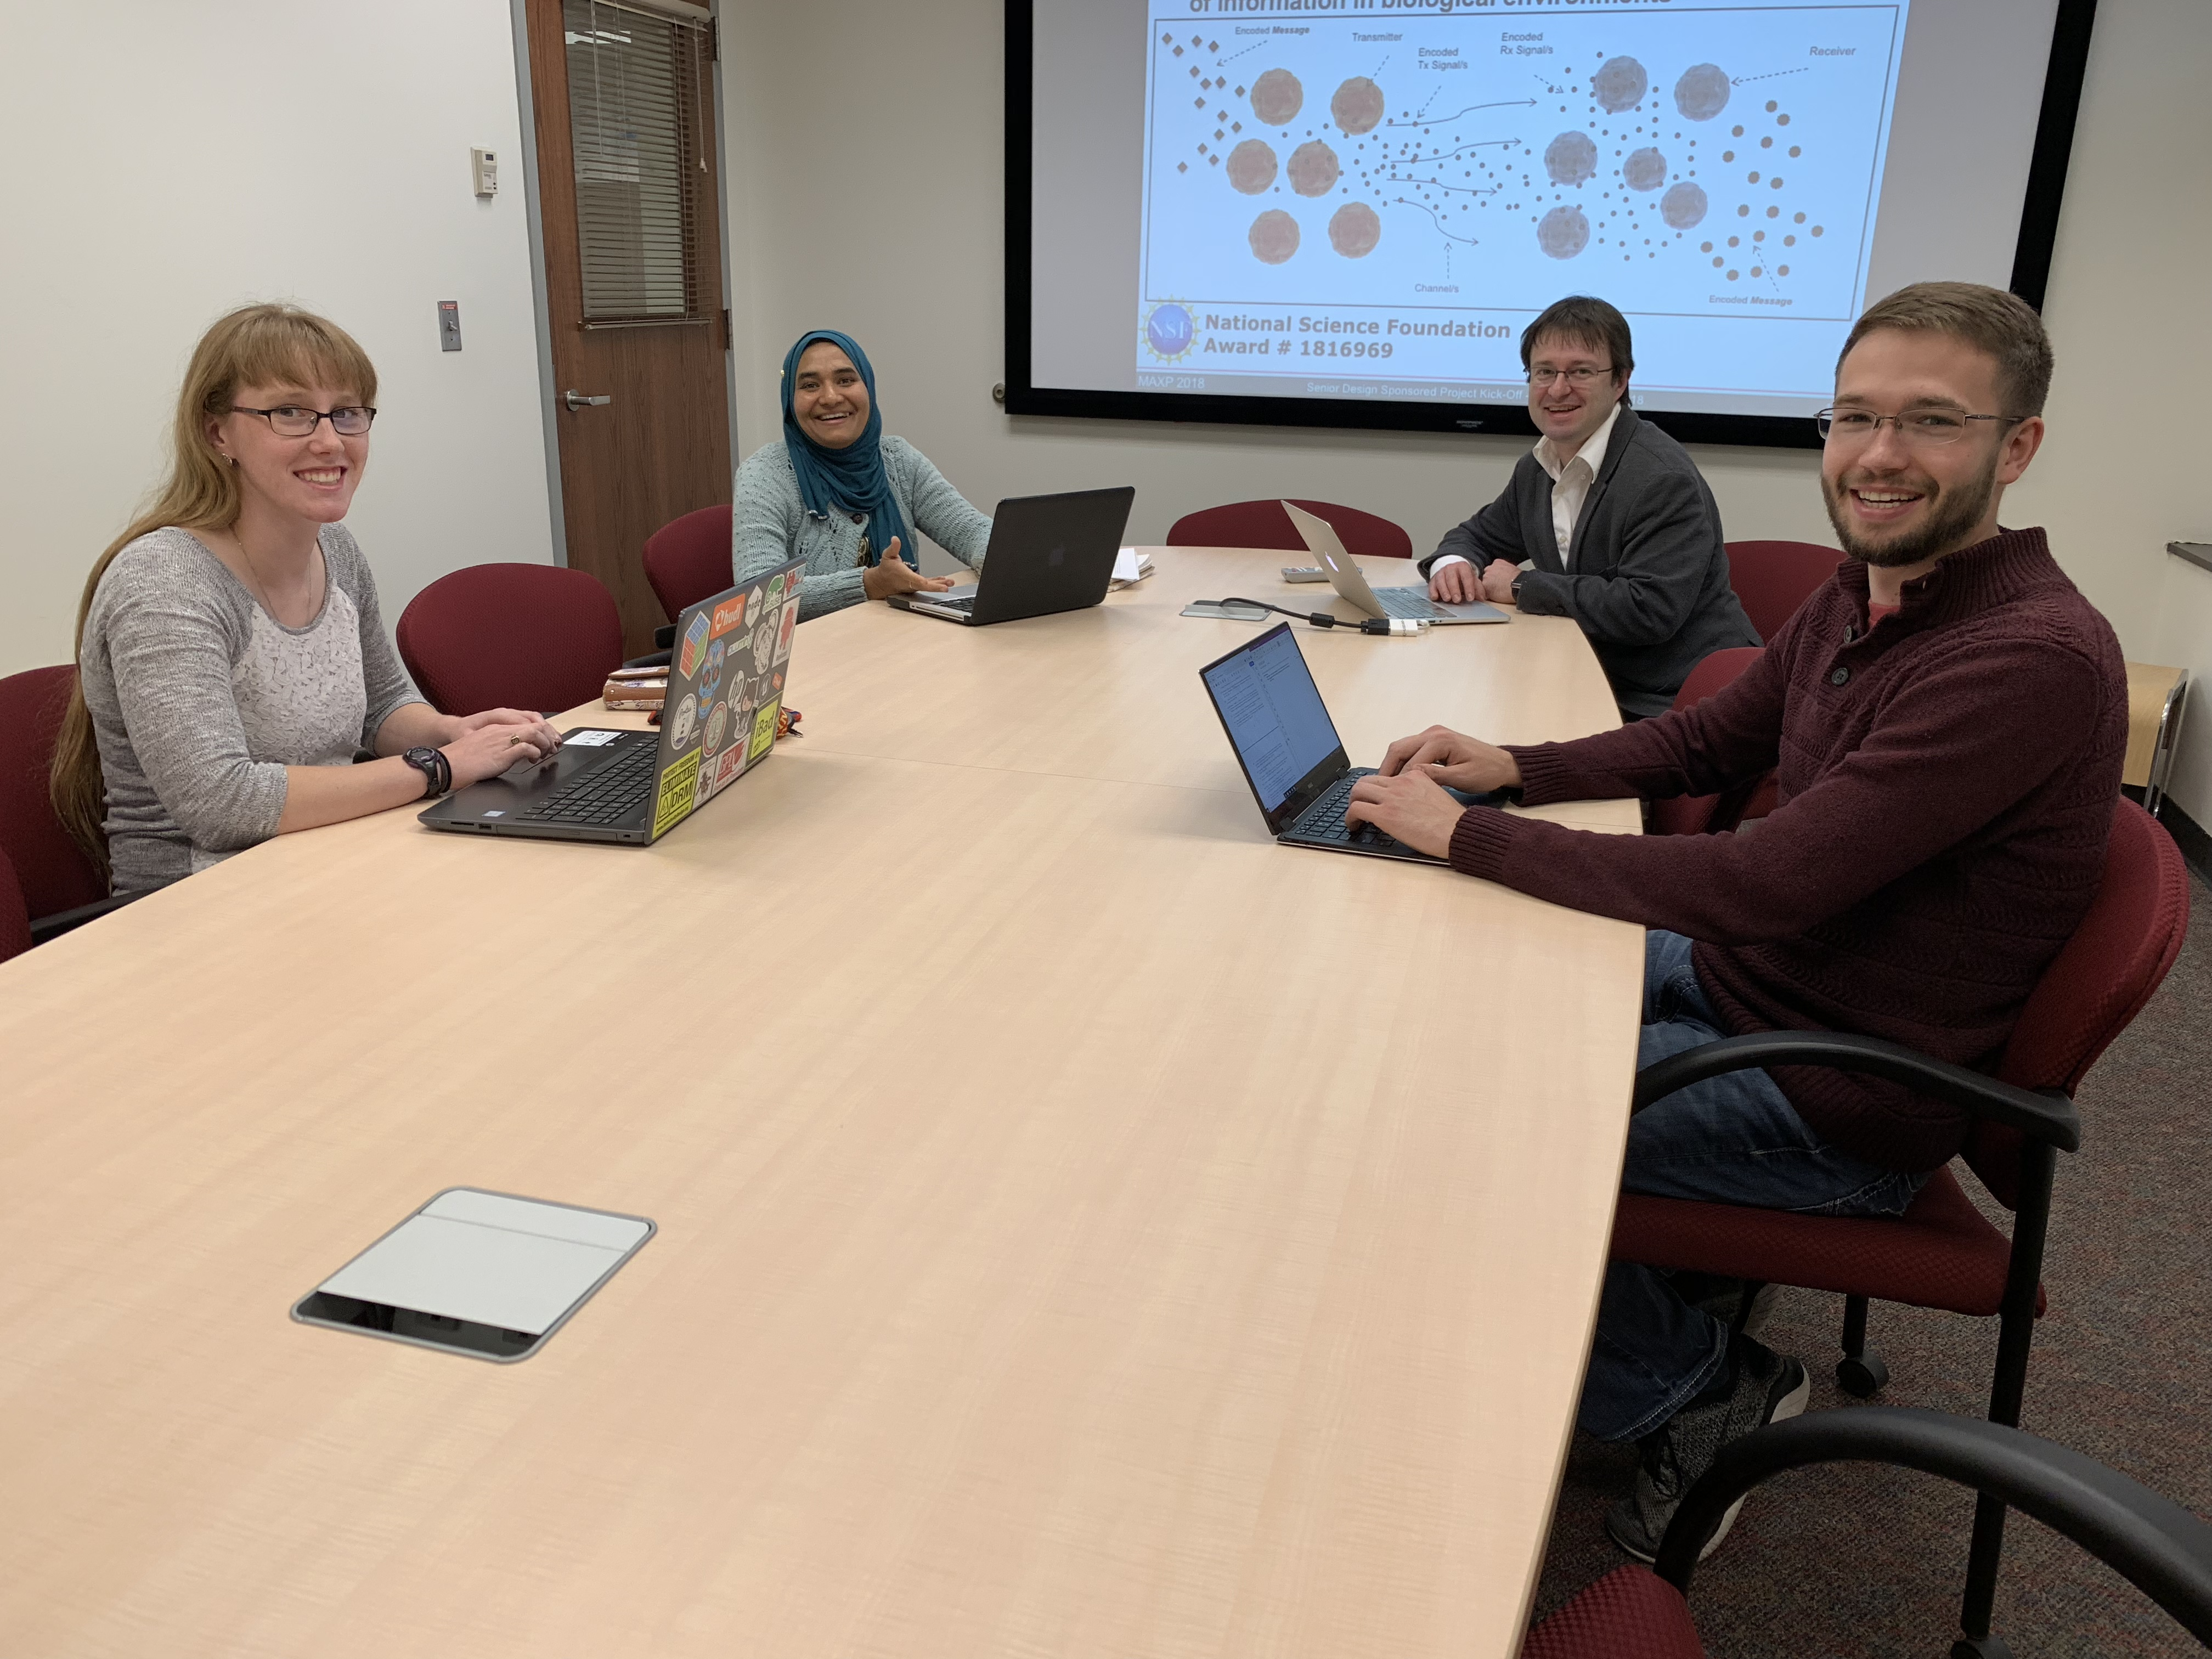 The WetComm project team from left to right: Molly Lee, Zahmeeth Sakkaff, Massimiliano Pierobon, and Colton Harper.